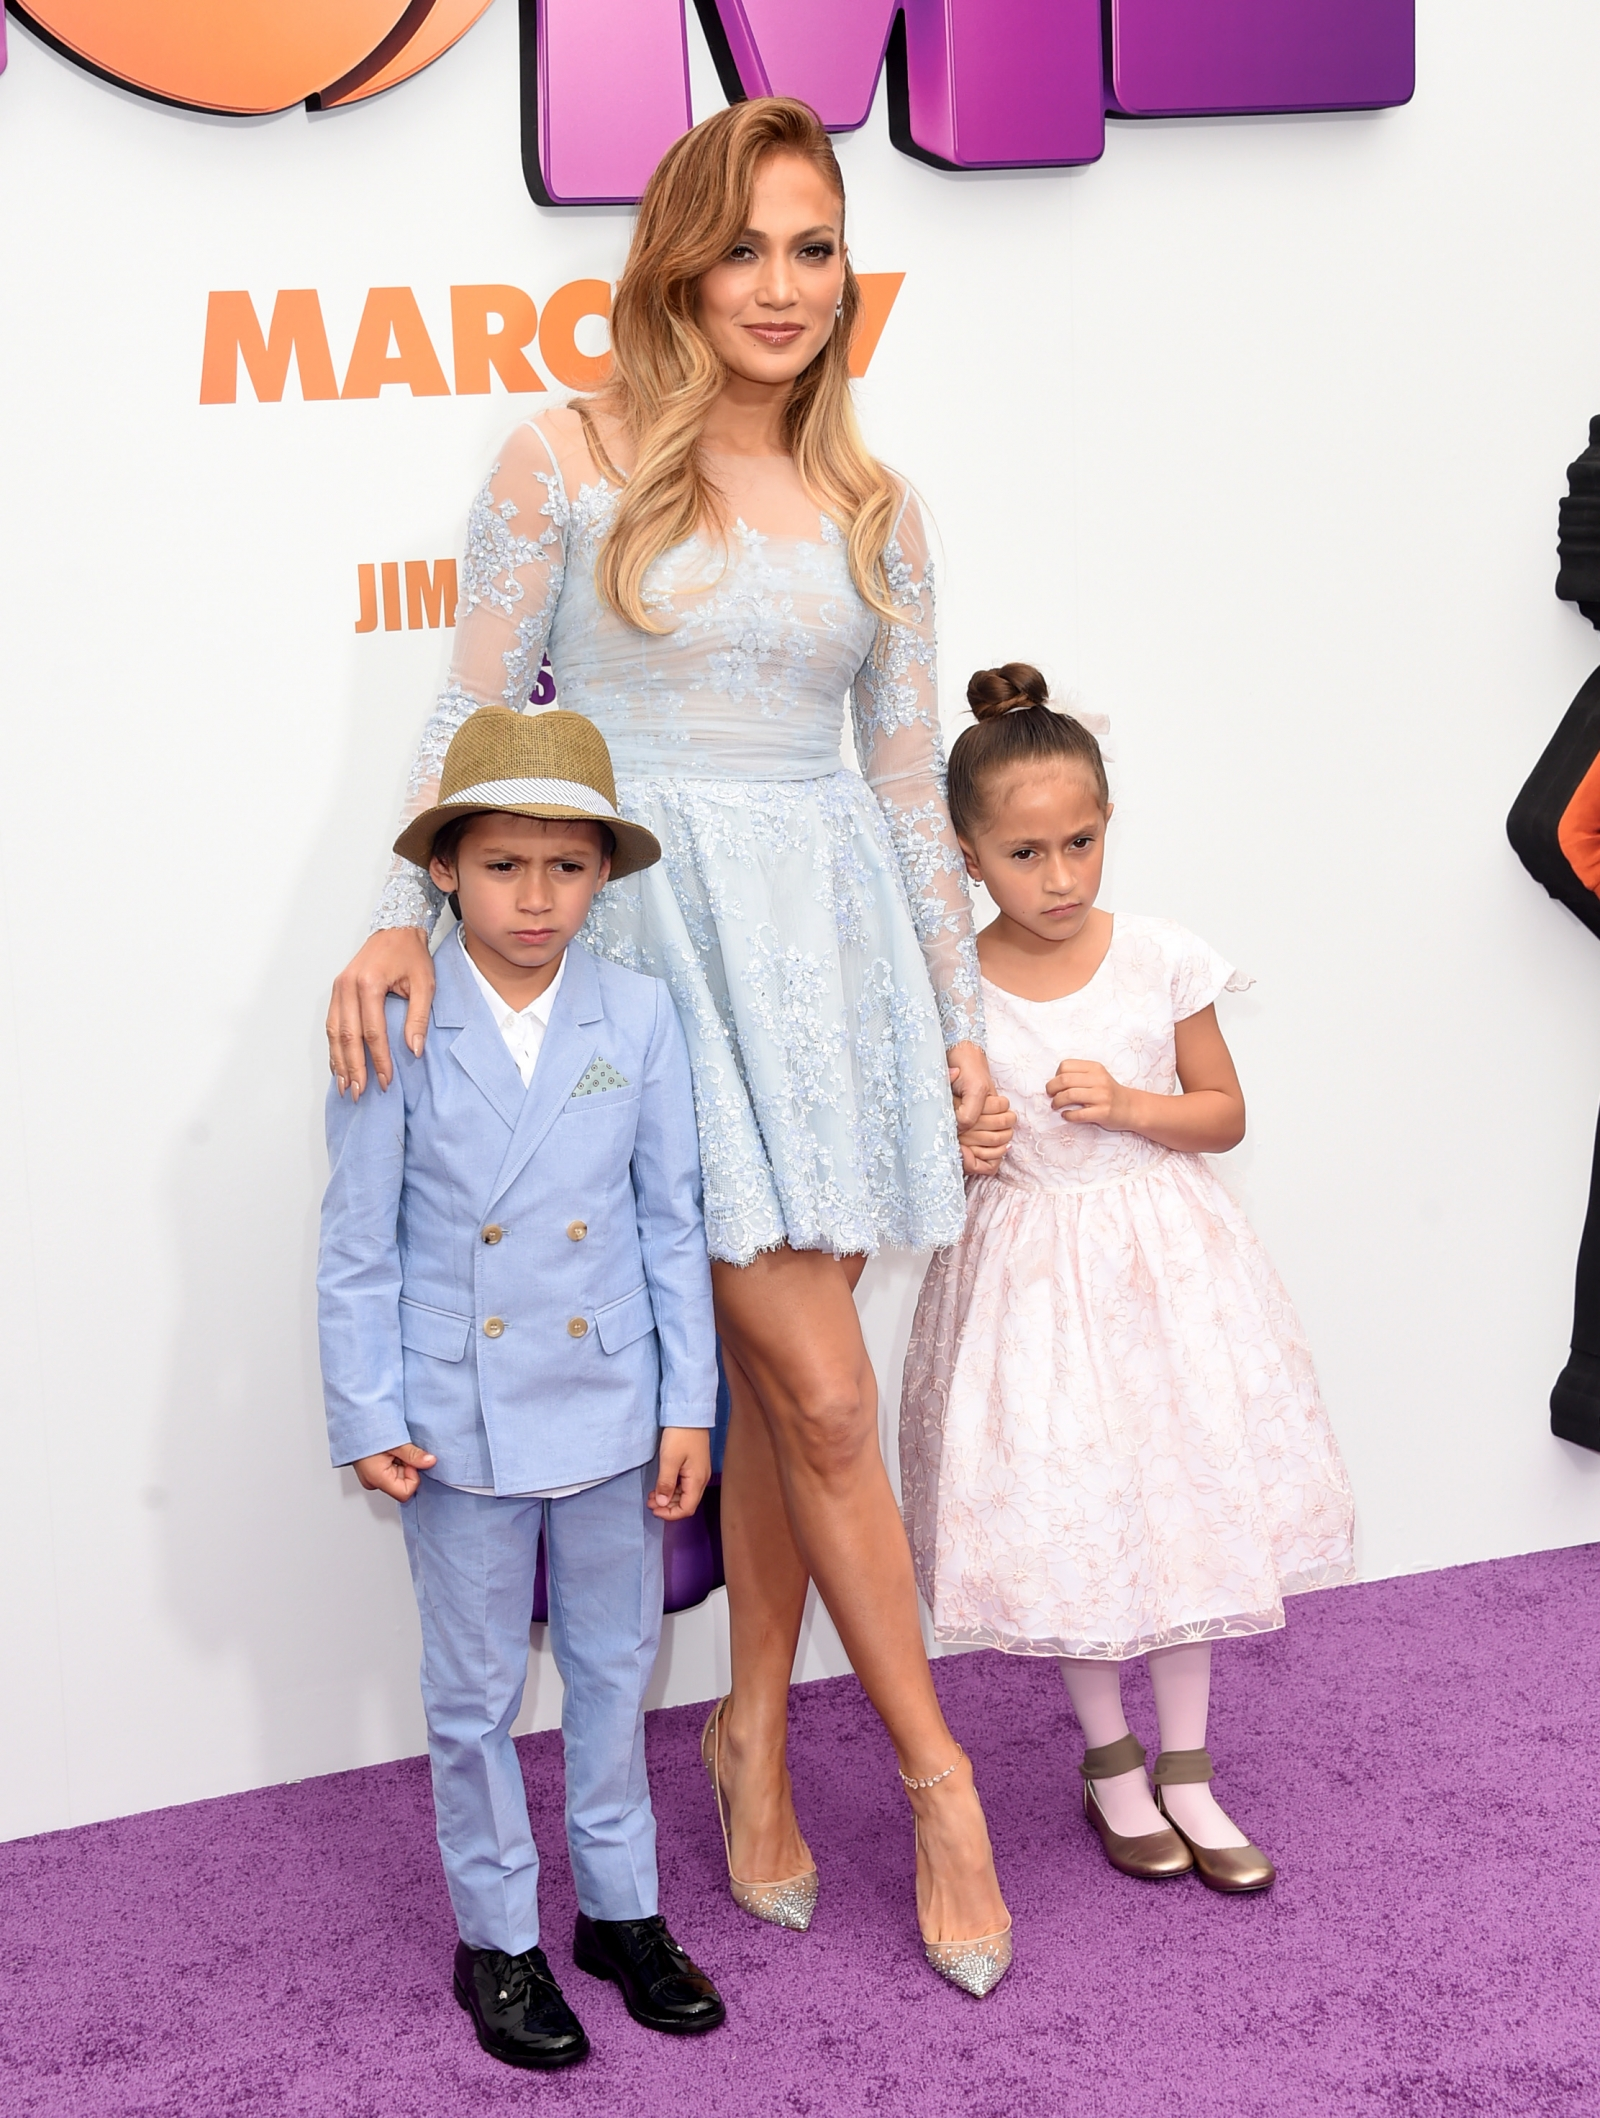 'Super diva mommy': Jennifer Lopez posts sweet throwback pic of her twins and fans are in 'tears'